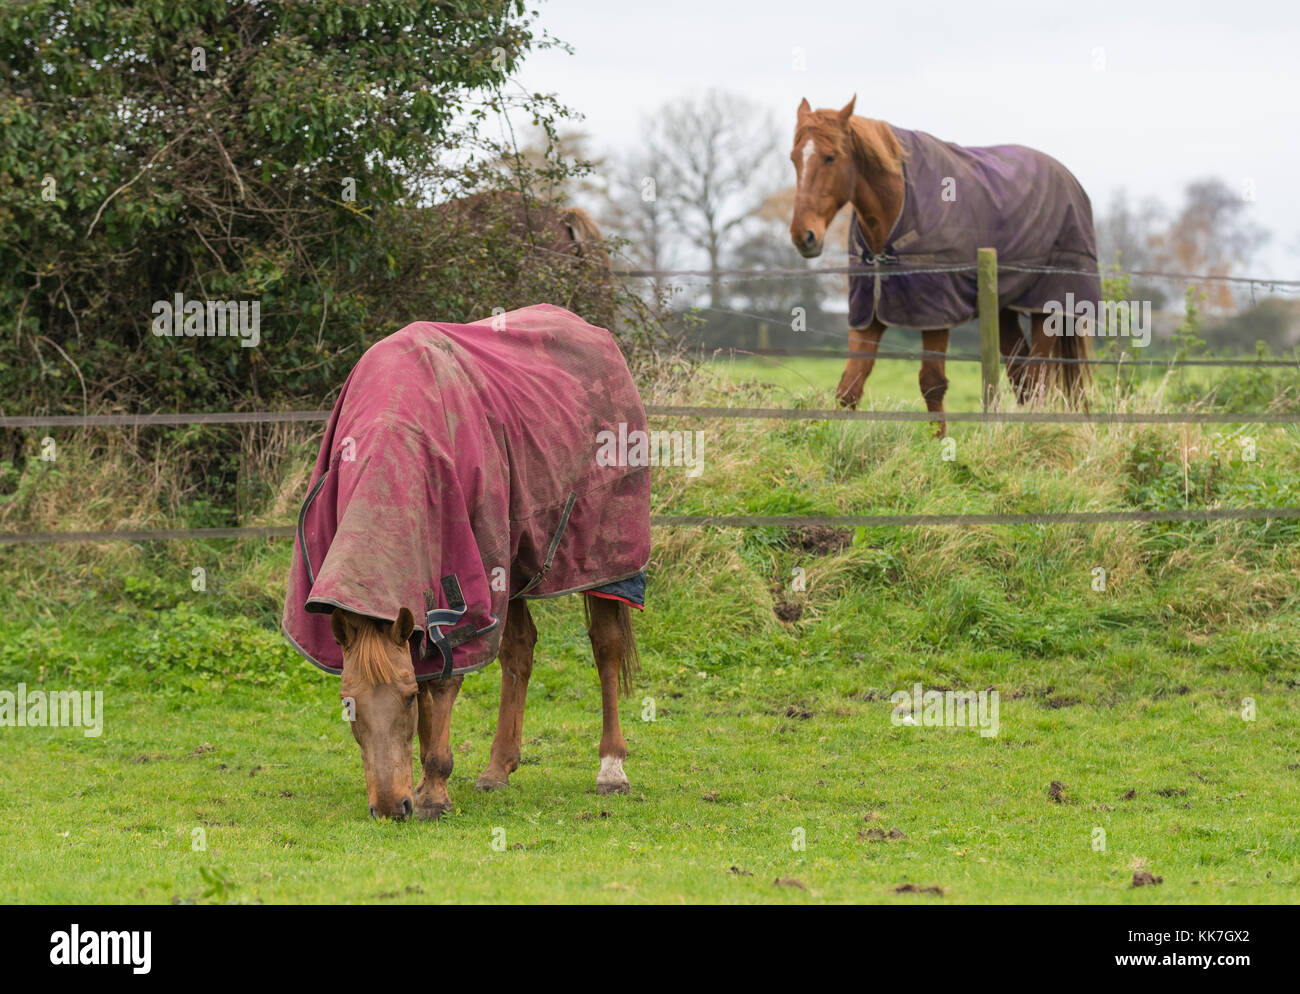 Horse Rug Stock Photos Amp Horse Rug Stock Images Alamy